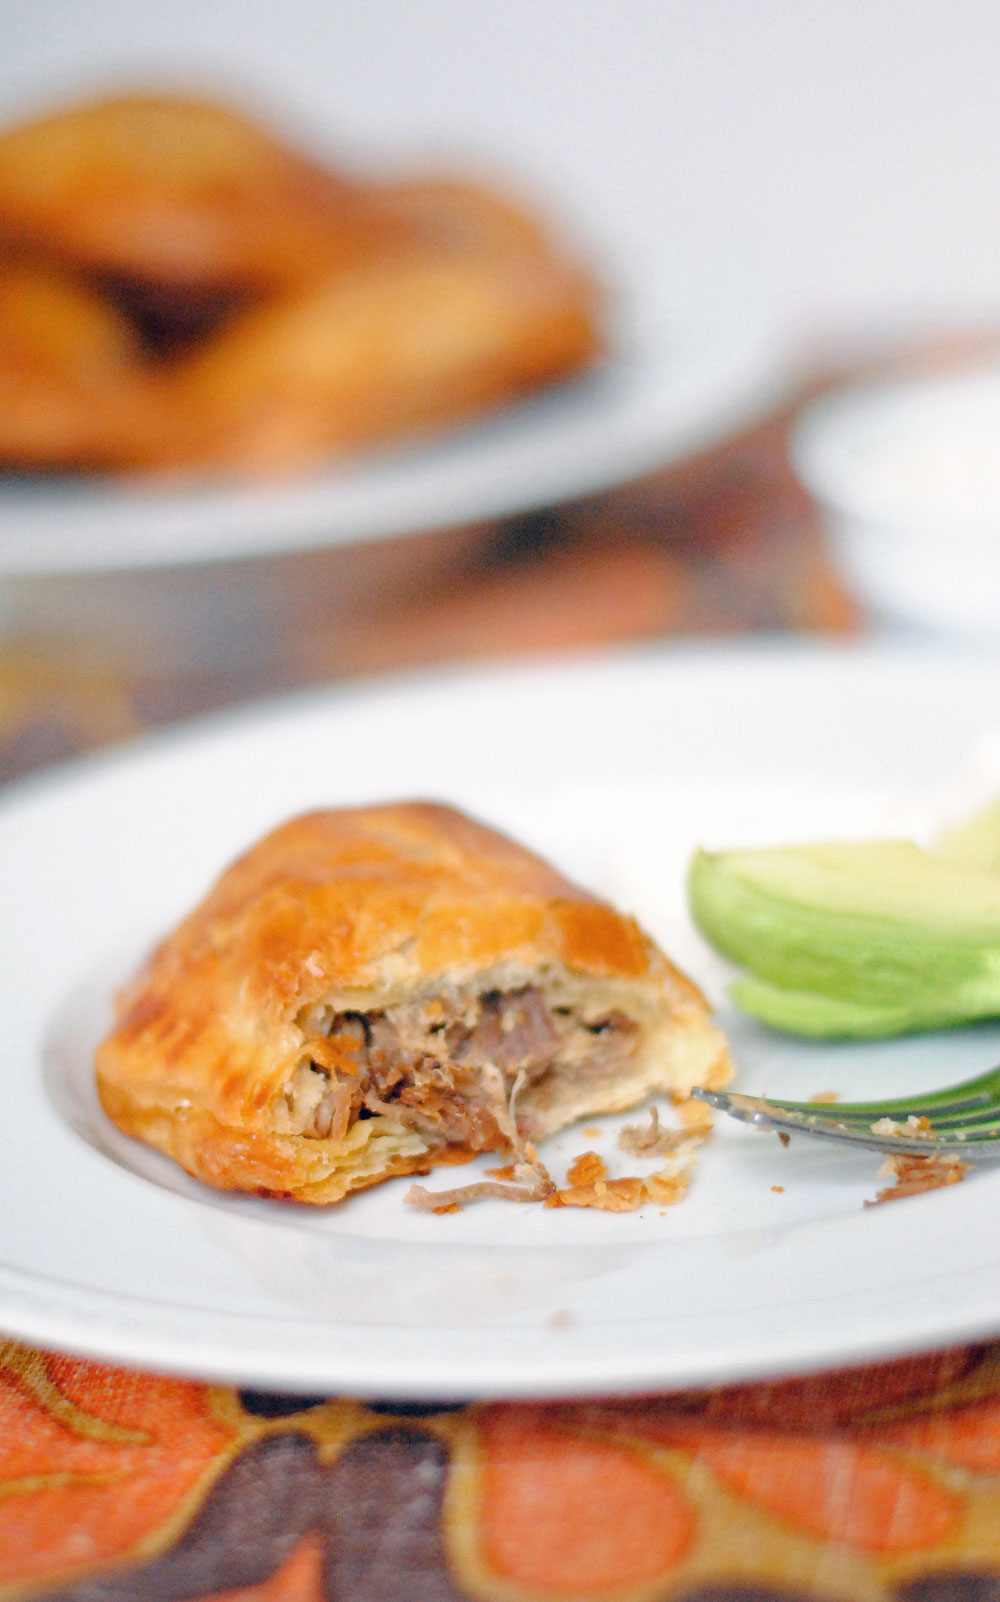 ... Empanadas with Slow Cooker Pork Carnitas Filling | Hottie Biscotti